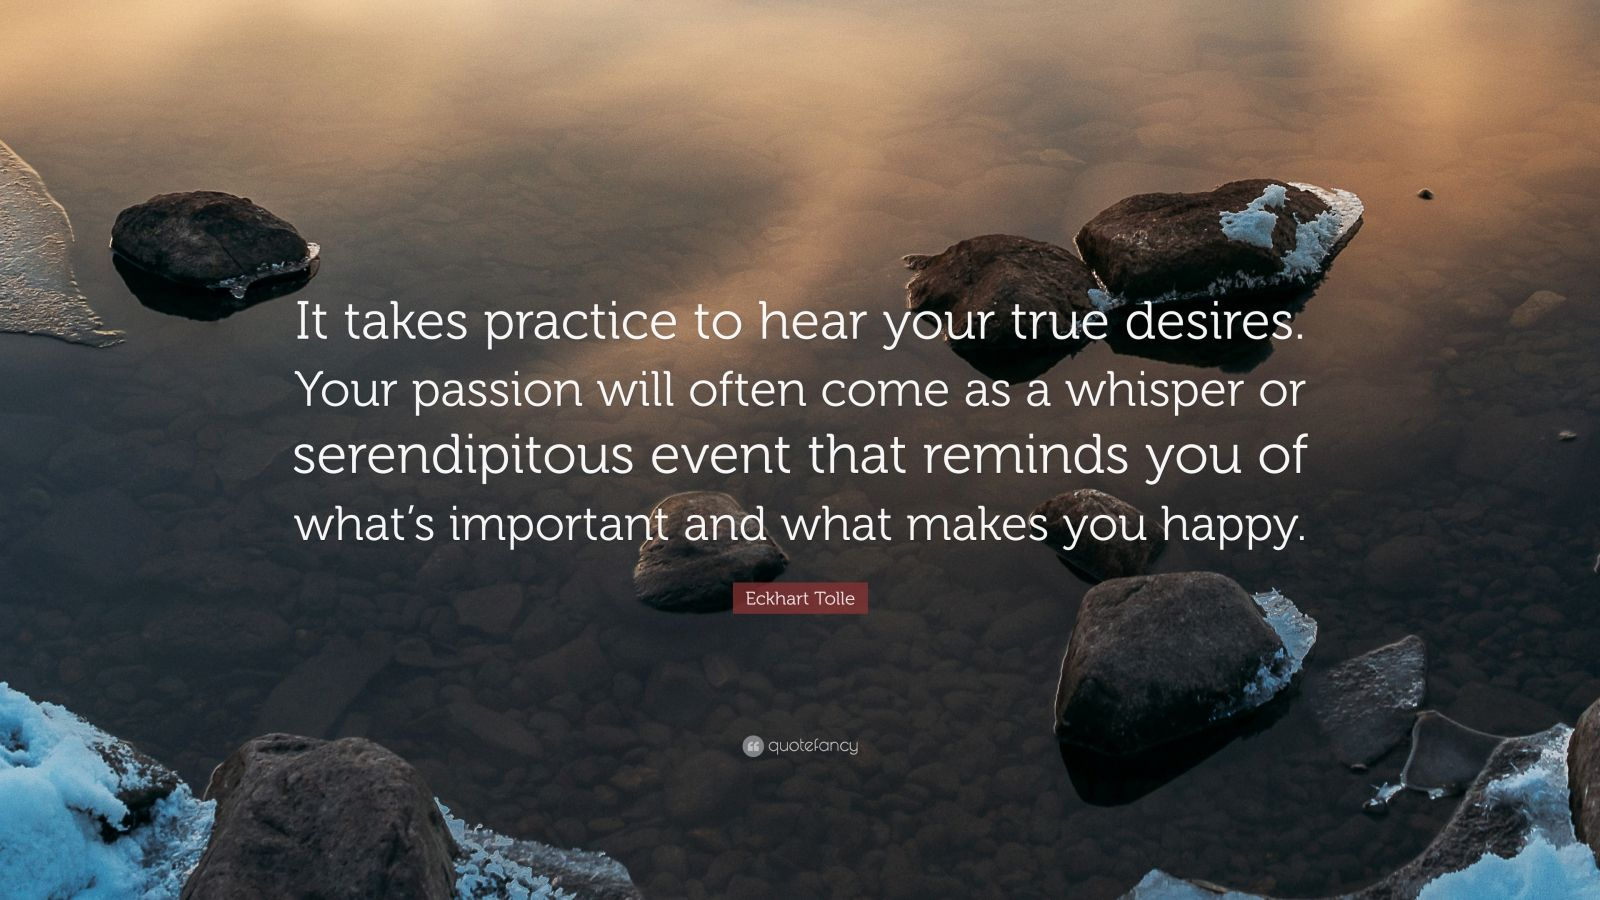 """Eckhart Tolle Quote: """"It takes practice to hear your true desires. Your passion will often come as a whisper or serendipitous event that reminds you of what's important and what makes you happy."""""""